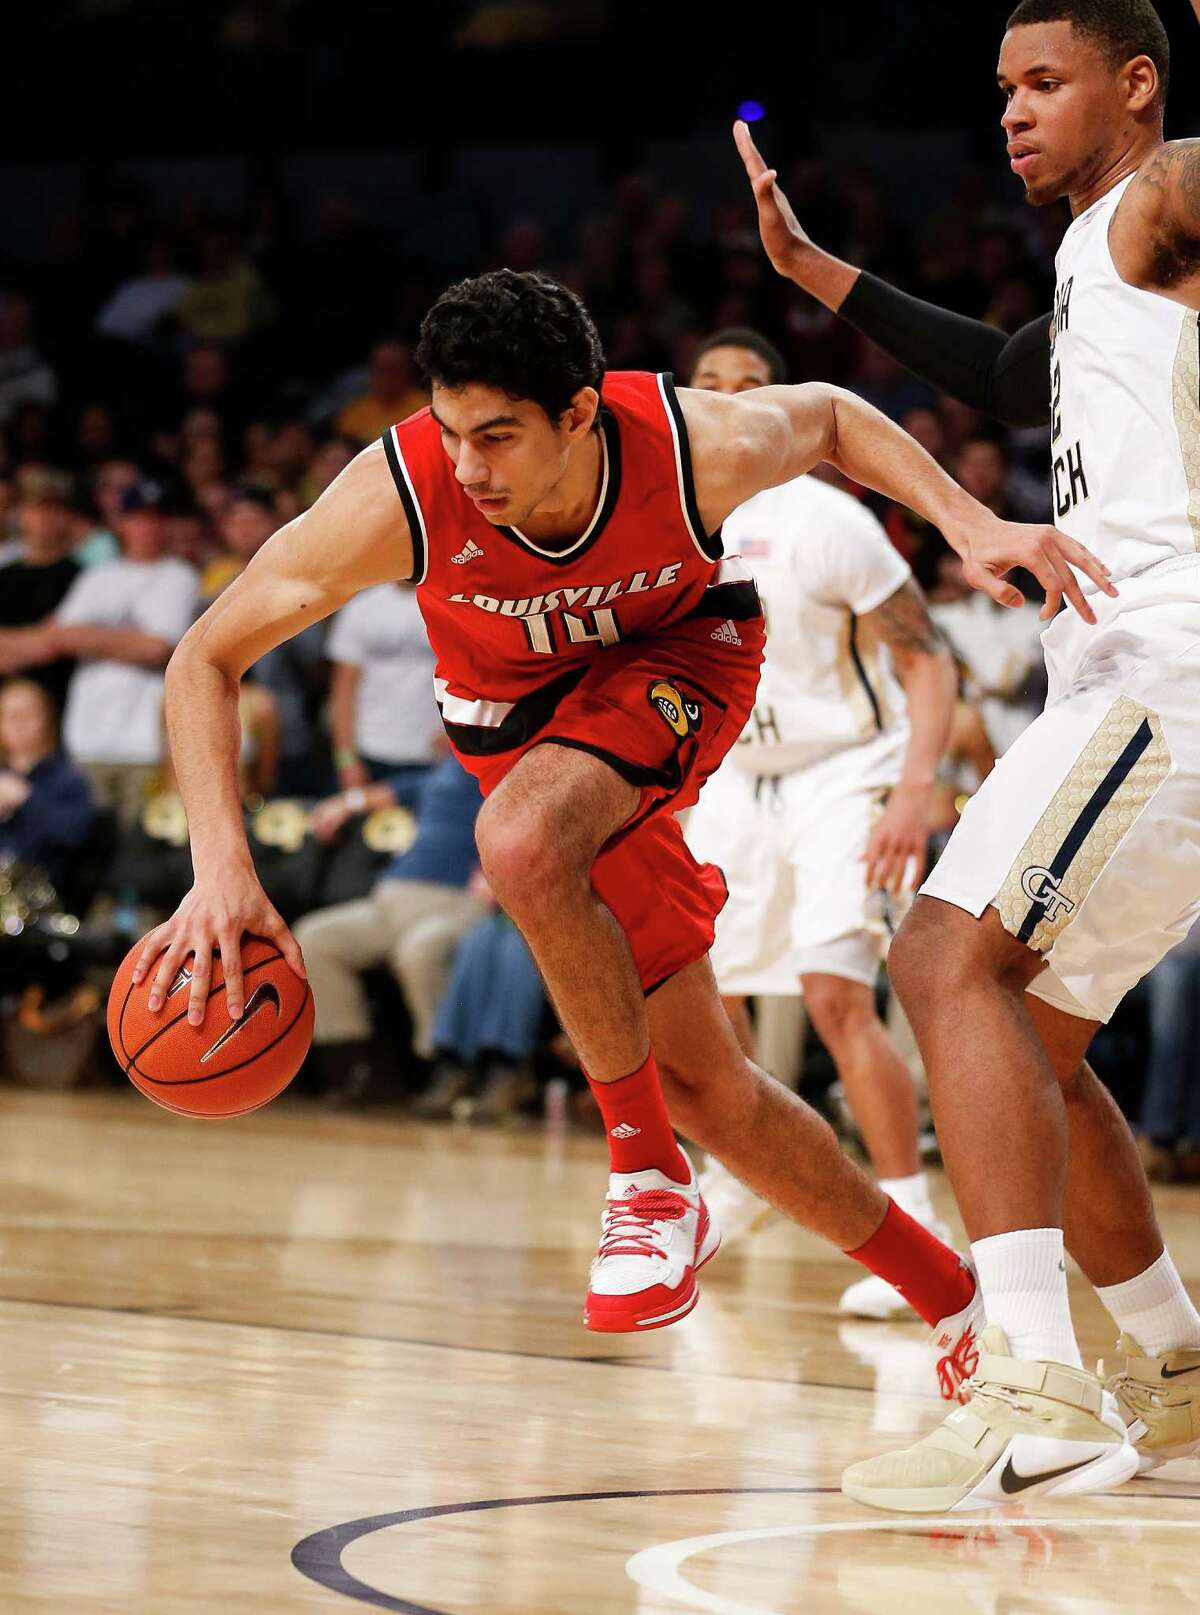 3. No. 17 Louisville 75, Georgia Tech 71 - In a tight contest featuring 11 lead changes on Saturday, the Cardinals were bailed out by a career-high 15 points from not-so-ballyhooed sophomore Anas Mahmoud.